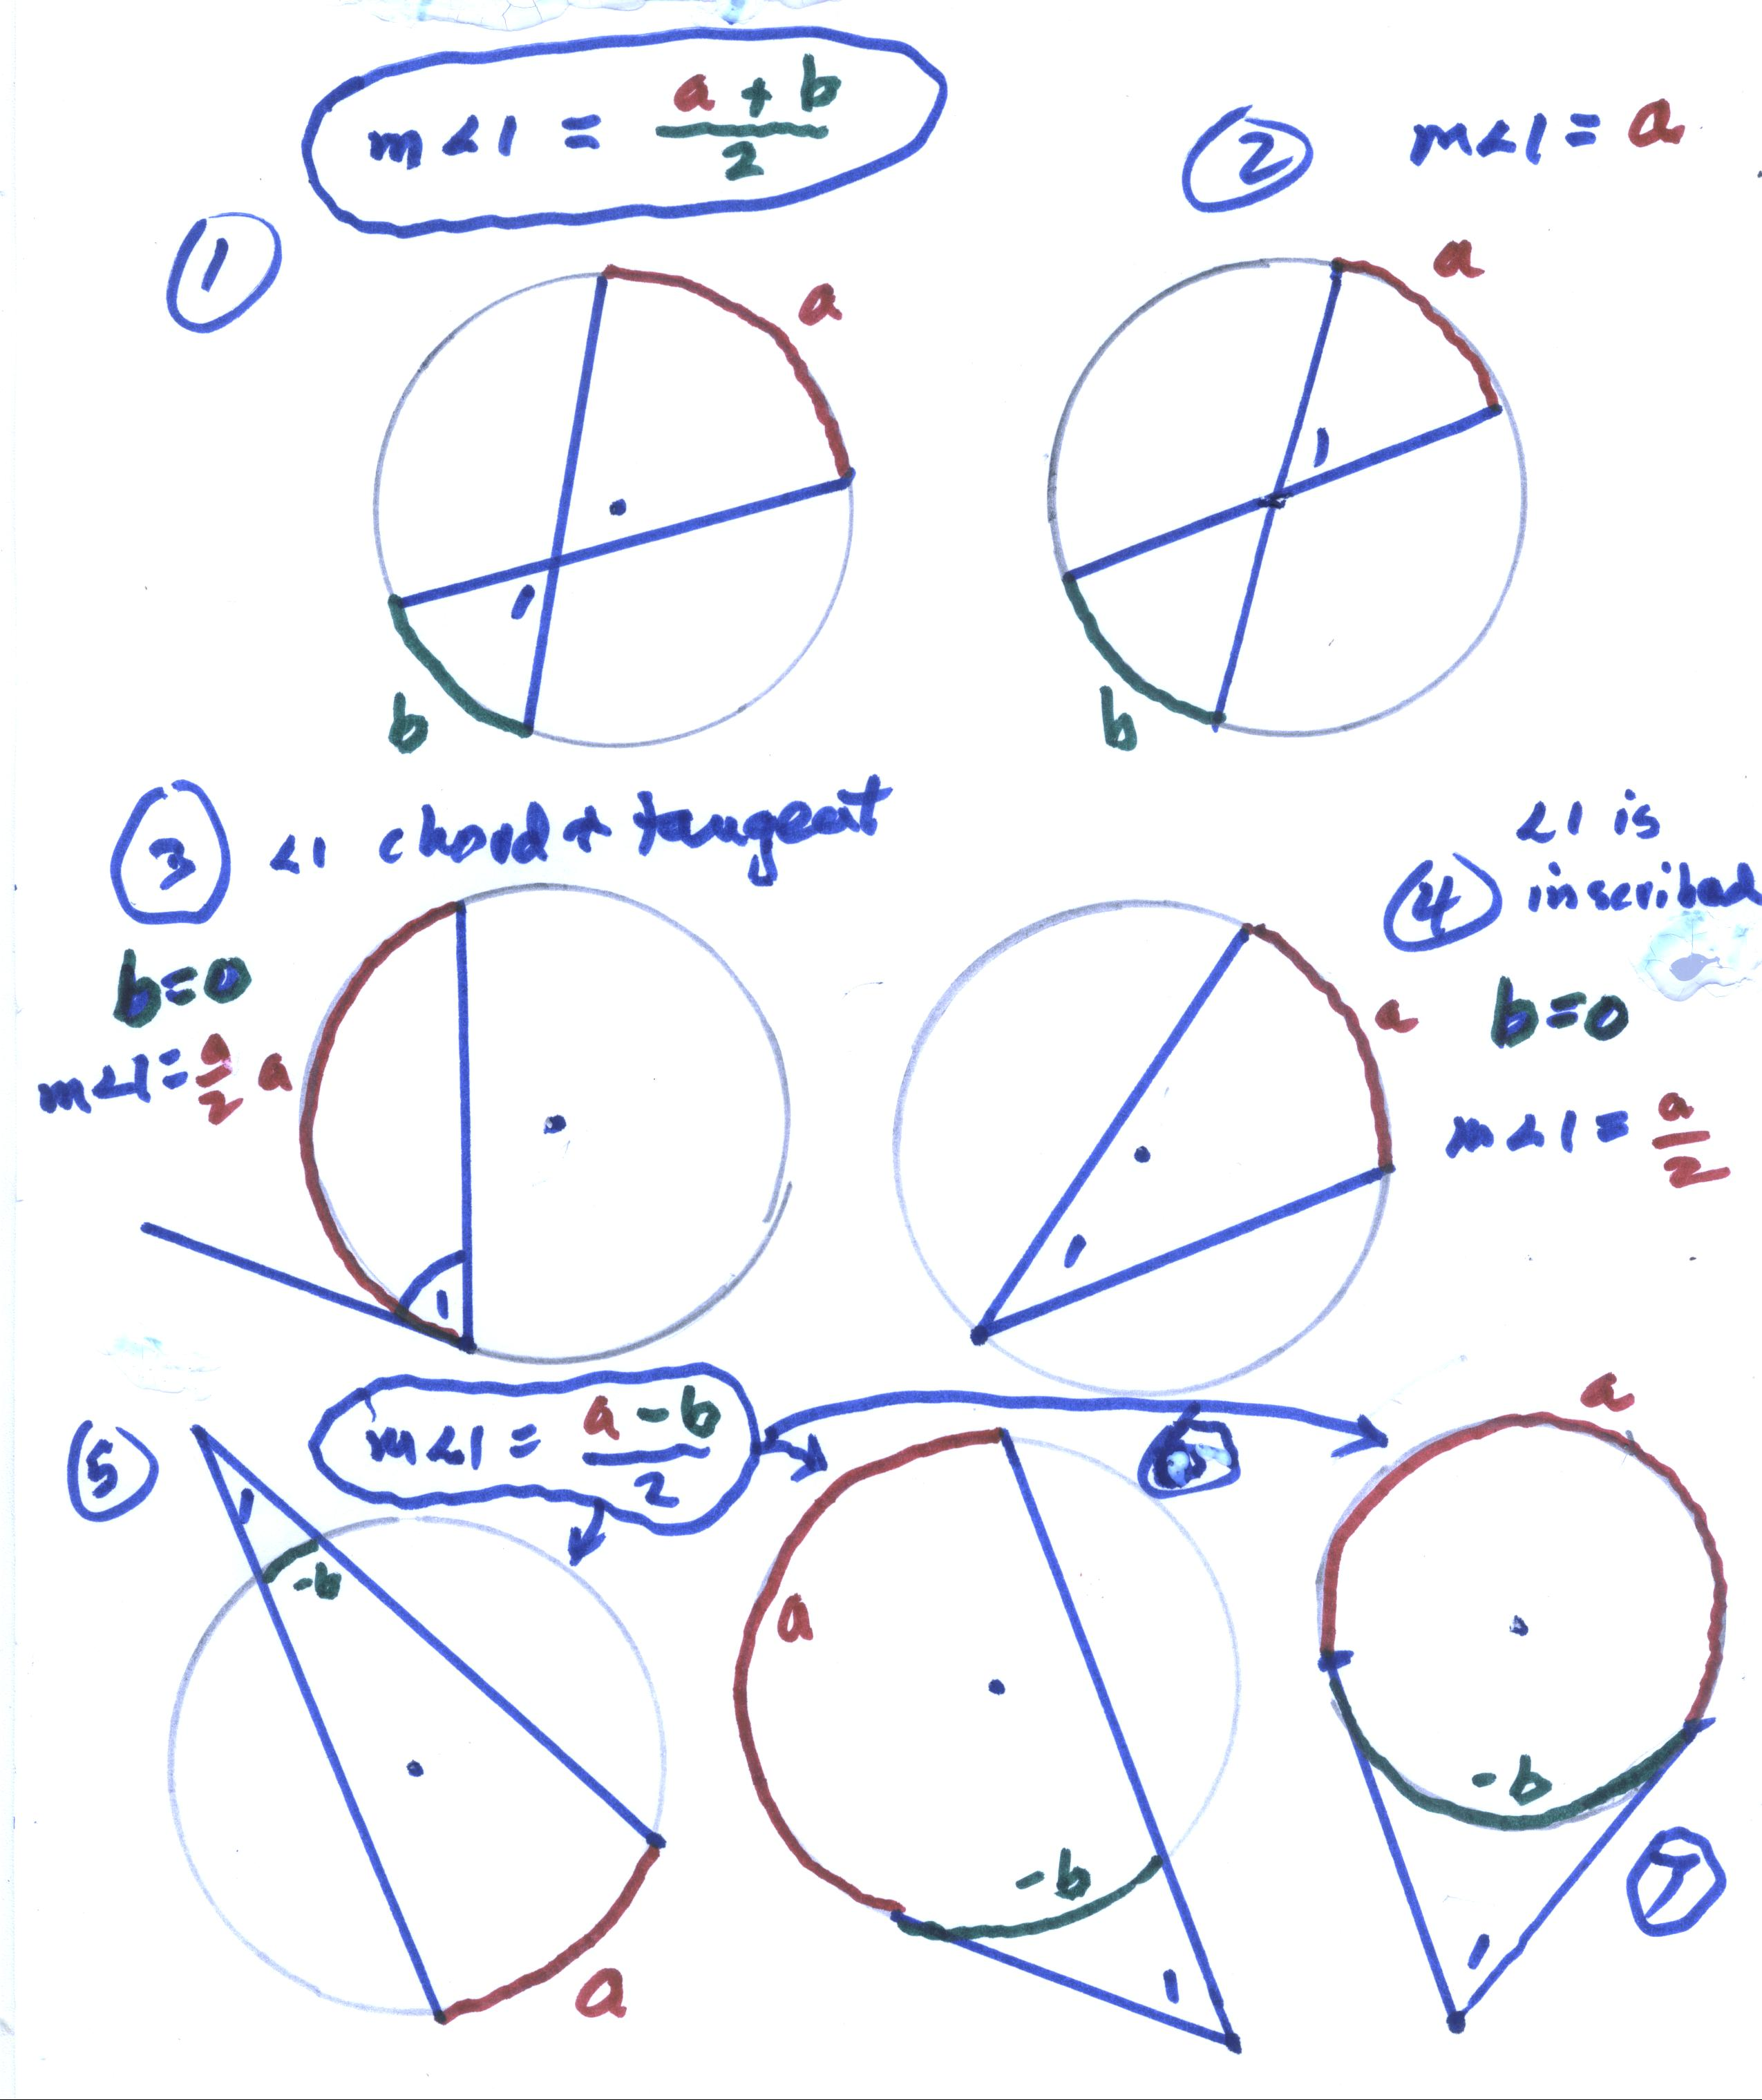 Angles in a circle cases 5 6 7 the vertex of angle 1 is outside the circle and we can think of the curvature of arc b being opposite the curvature of arc a or b ccuart Images